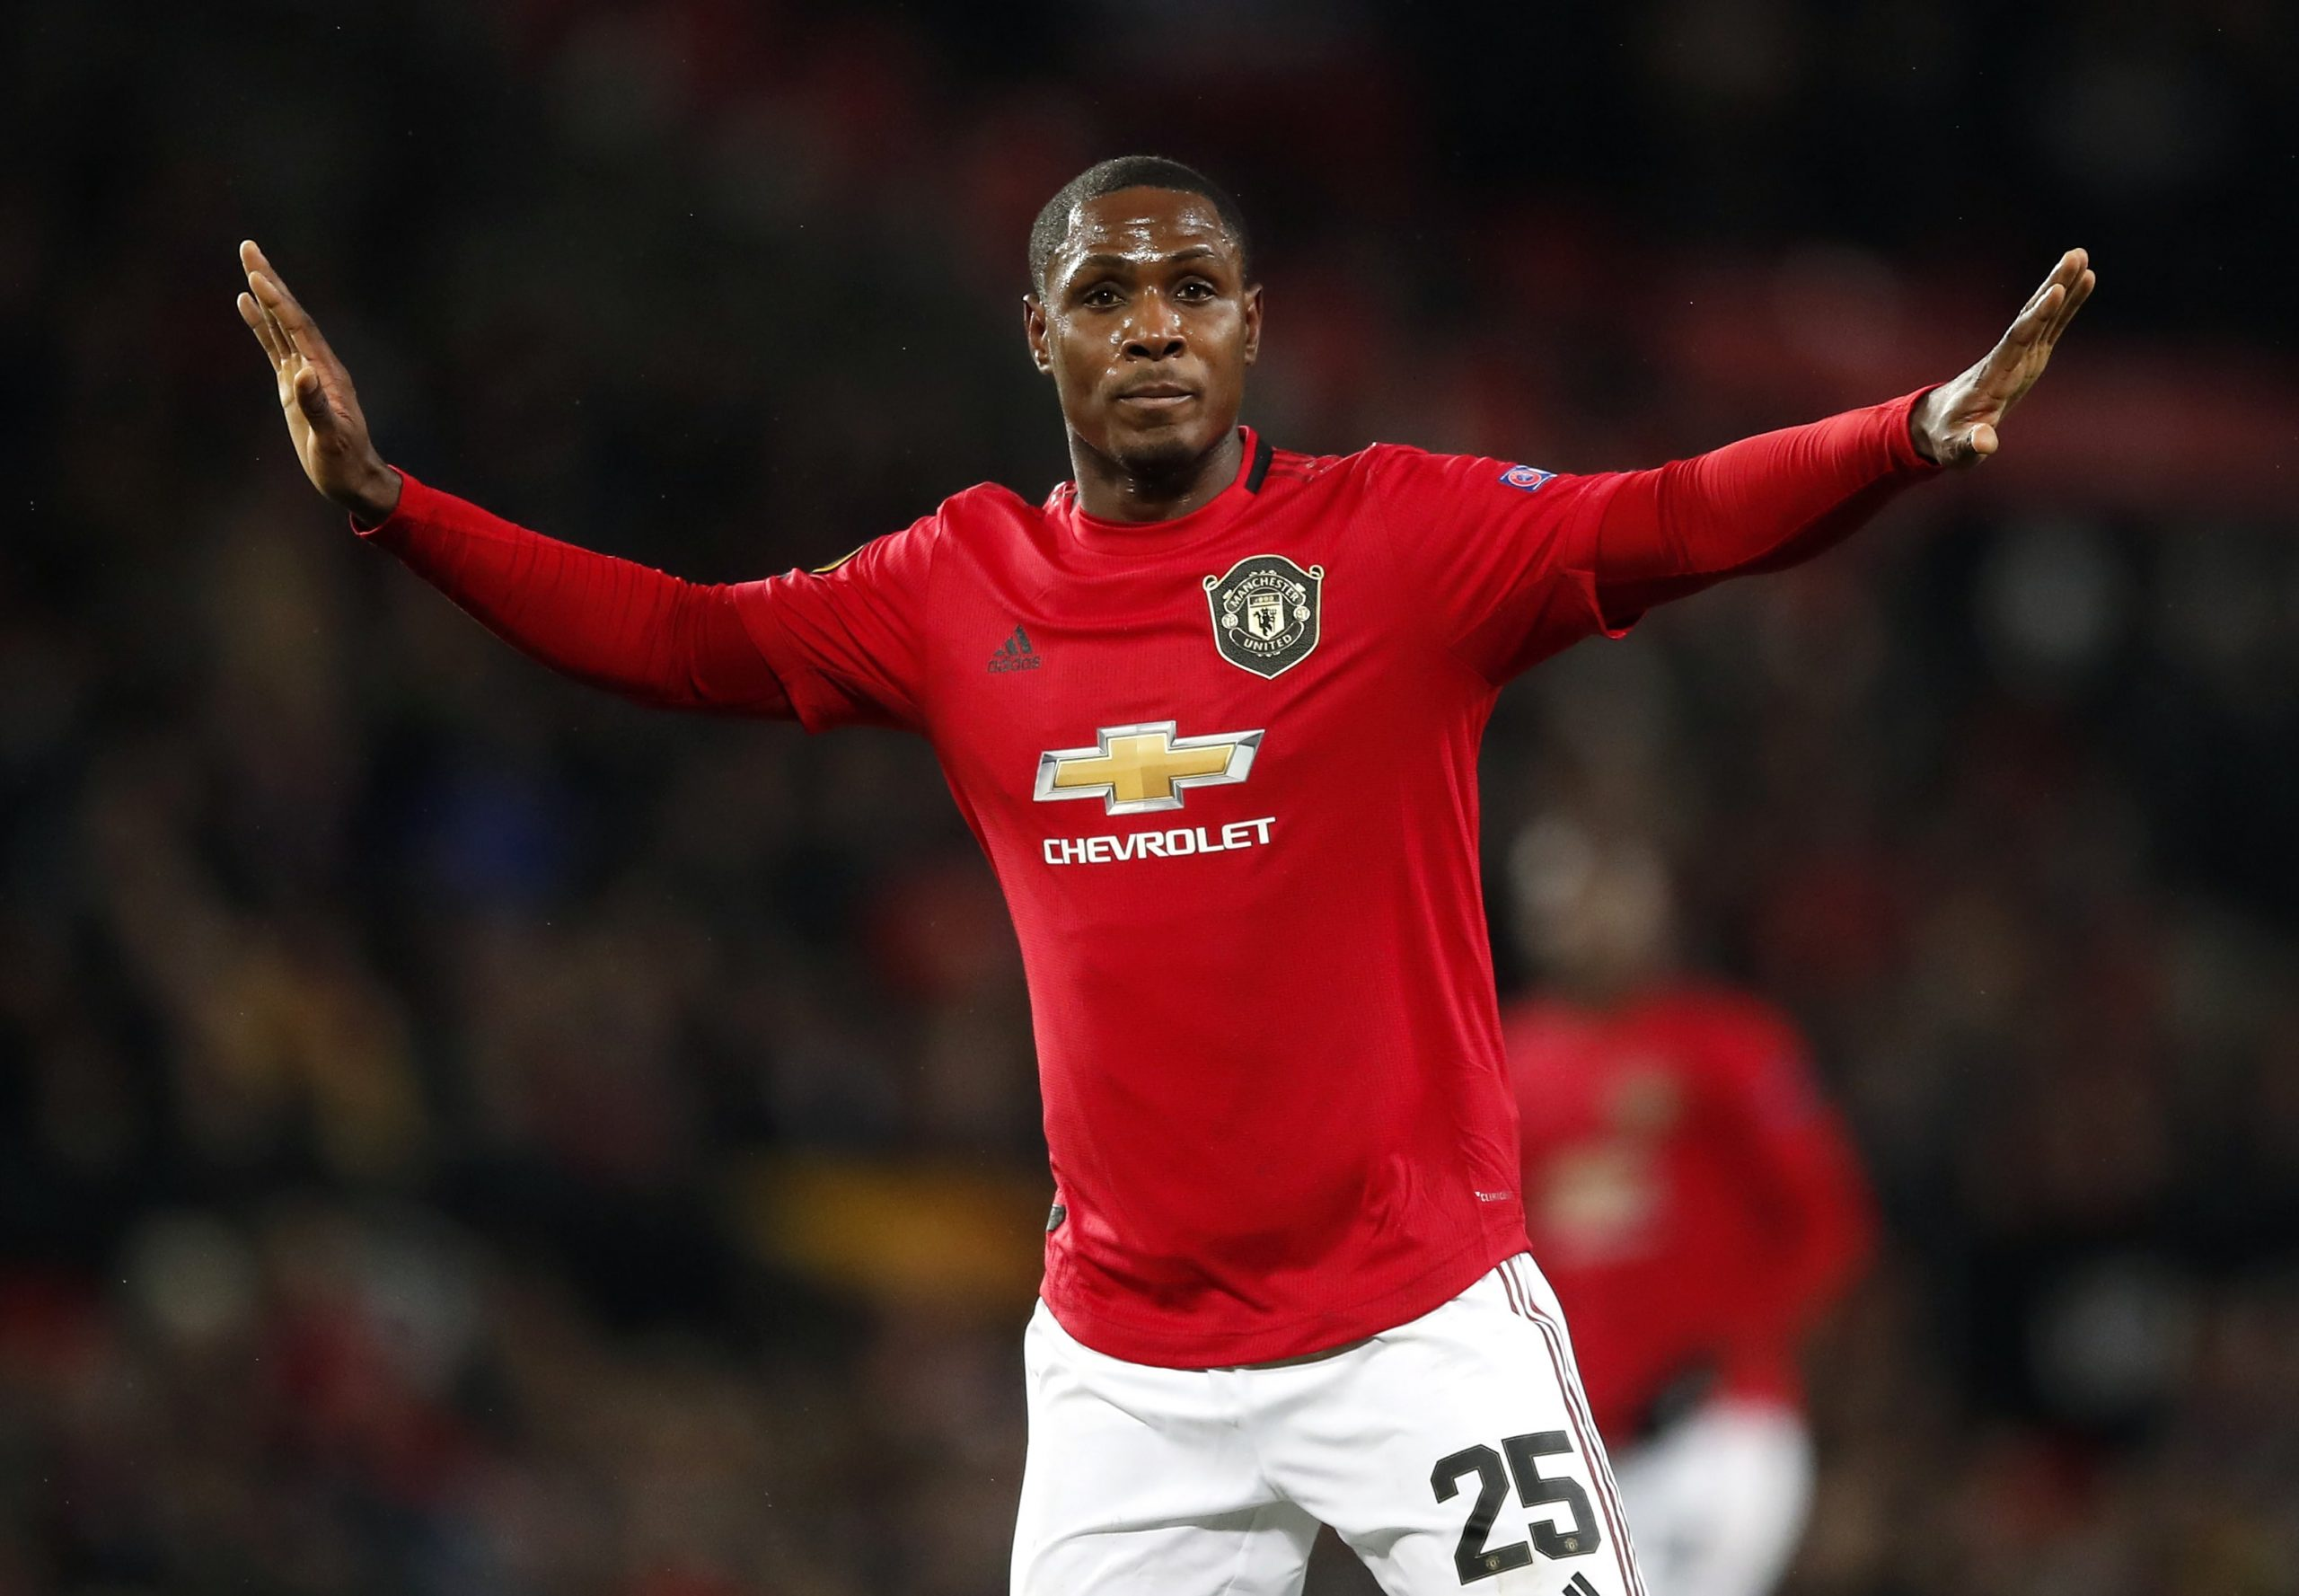 Ighalo And His Uncertain Future At Manchester United